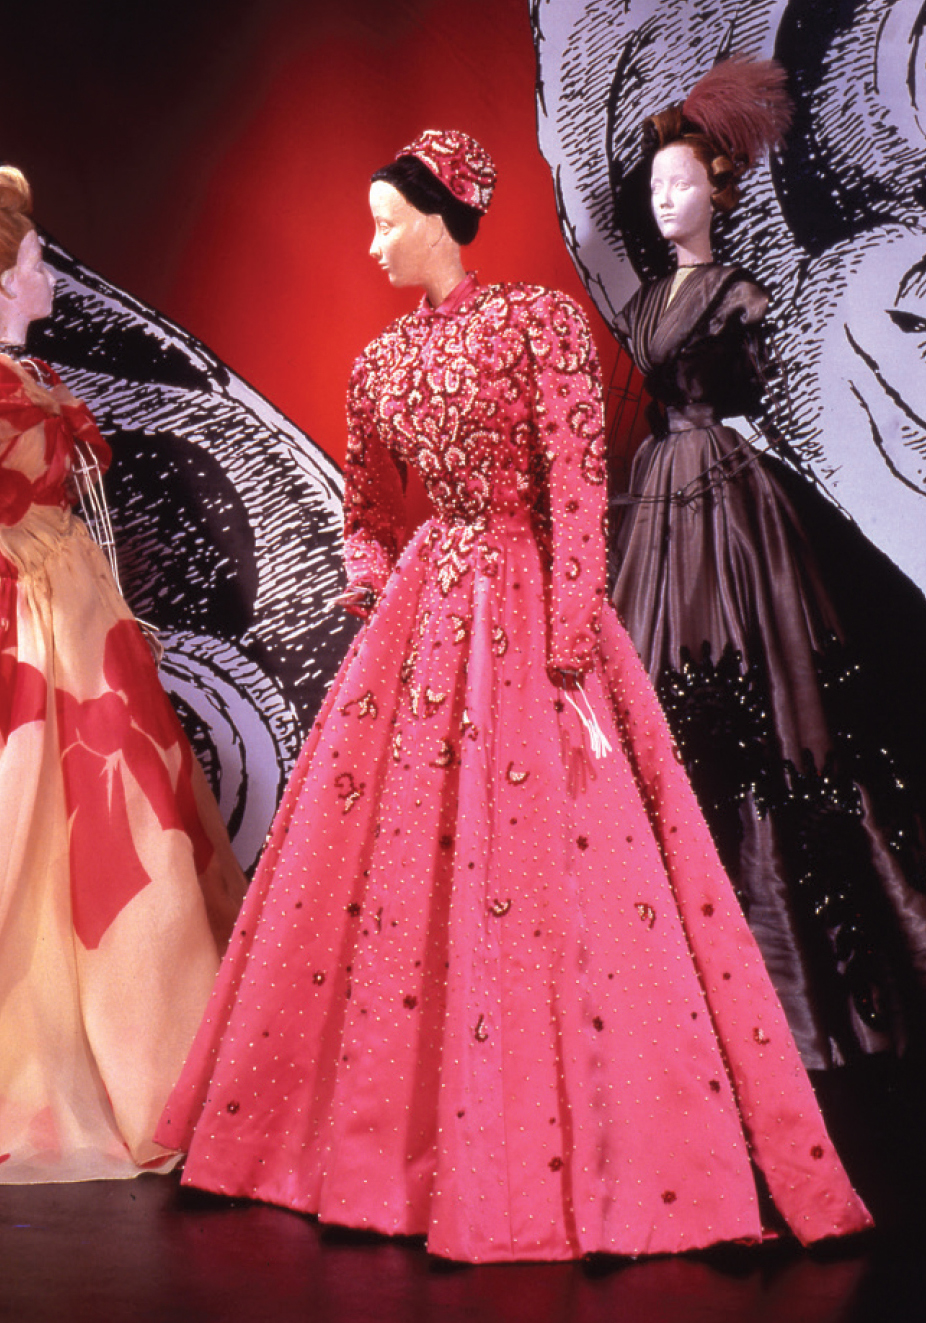 Balenciaga. Raspberry Satin (synthetic) long evening dress with tiny  collar, long narrow sleeves, and full skirt. Embroidery of pearls and ruby  beads.